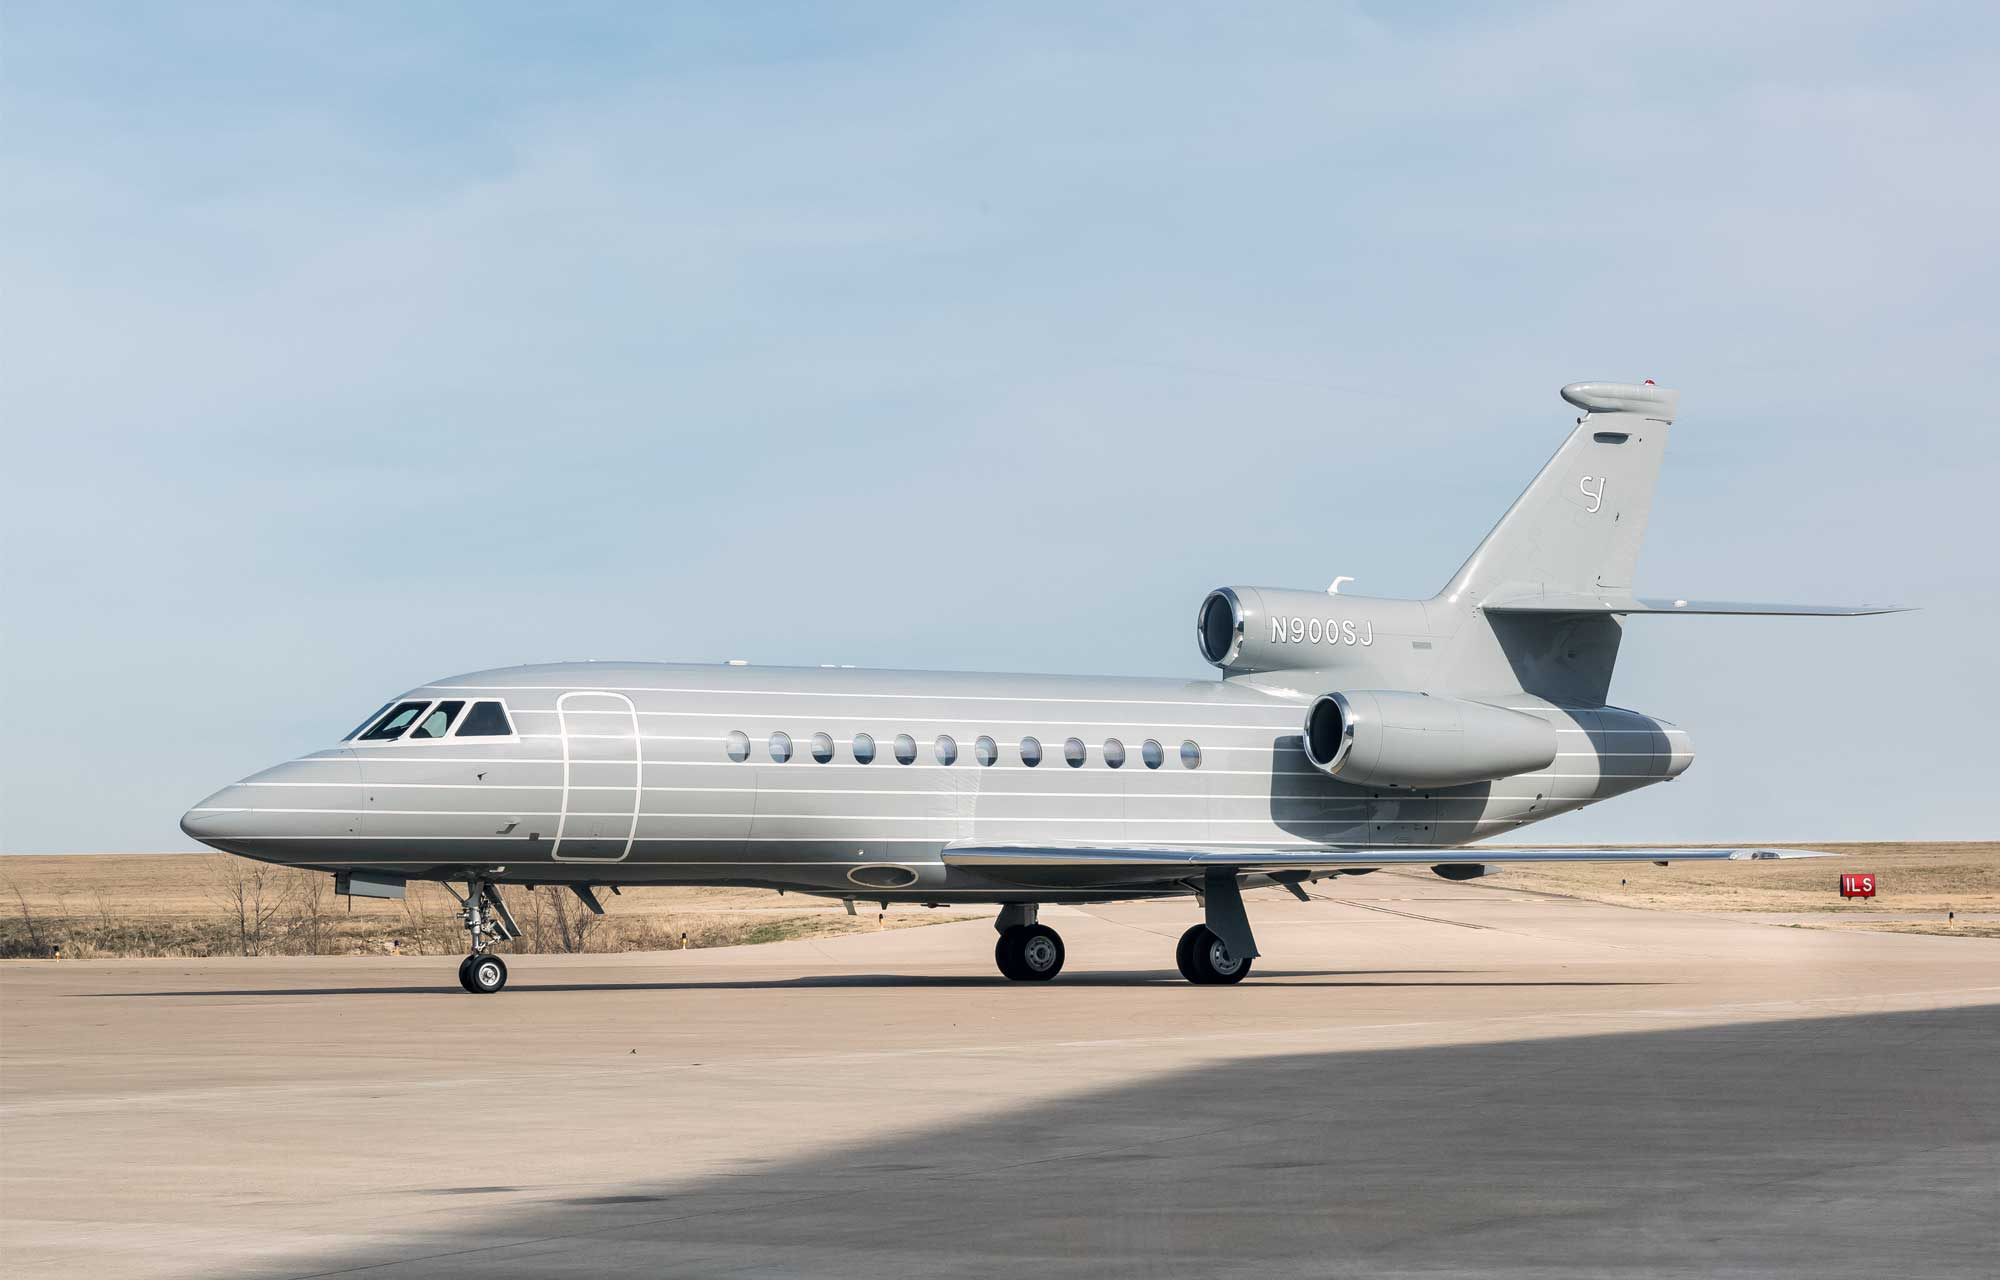 Related model: Dassault Falcon 900EX EASy